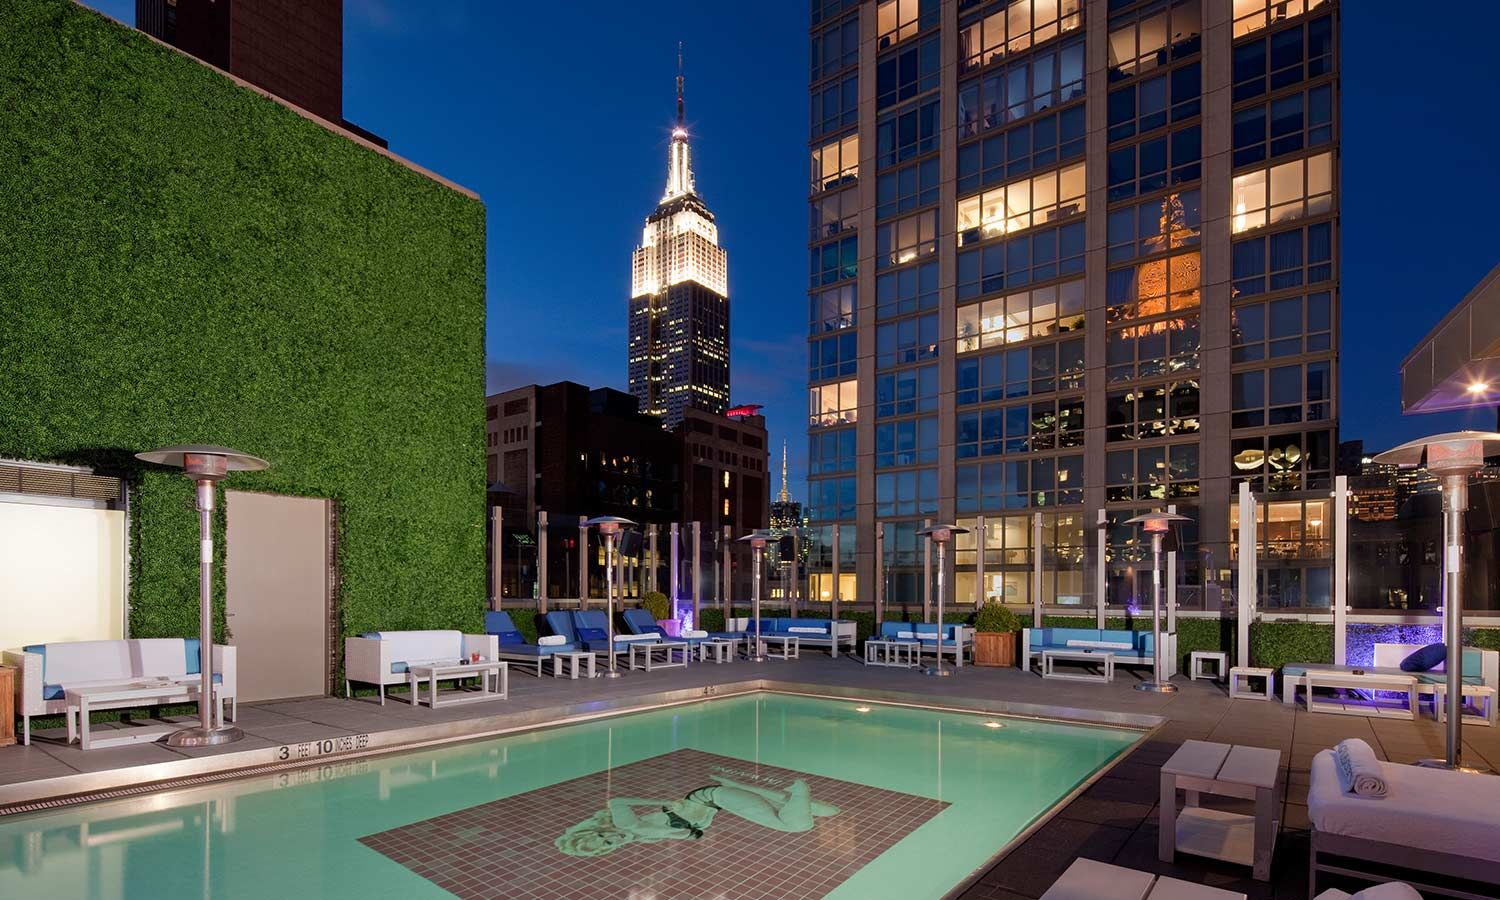 Gansevoort Park Rooftop Rooftop Bars Nyc New York Rooftop Nyc Rooftop